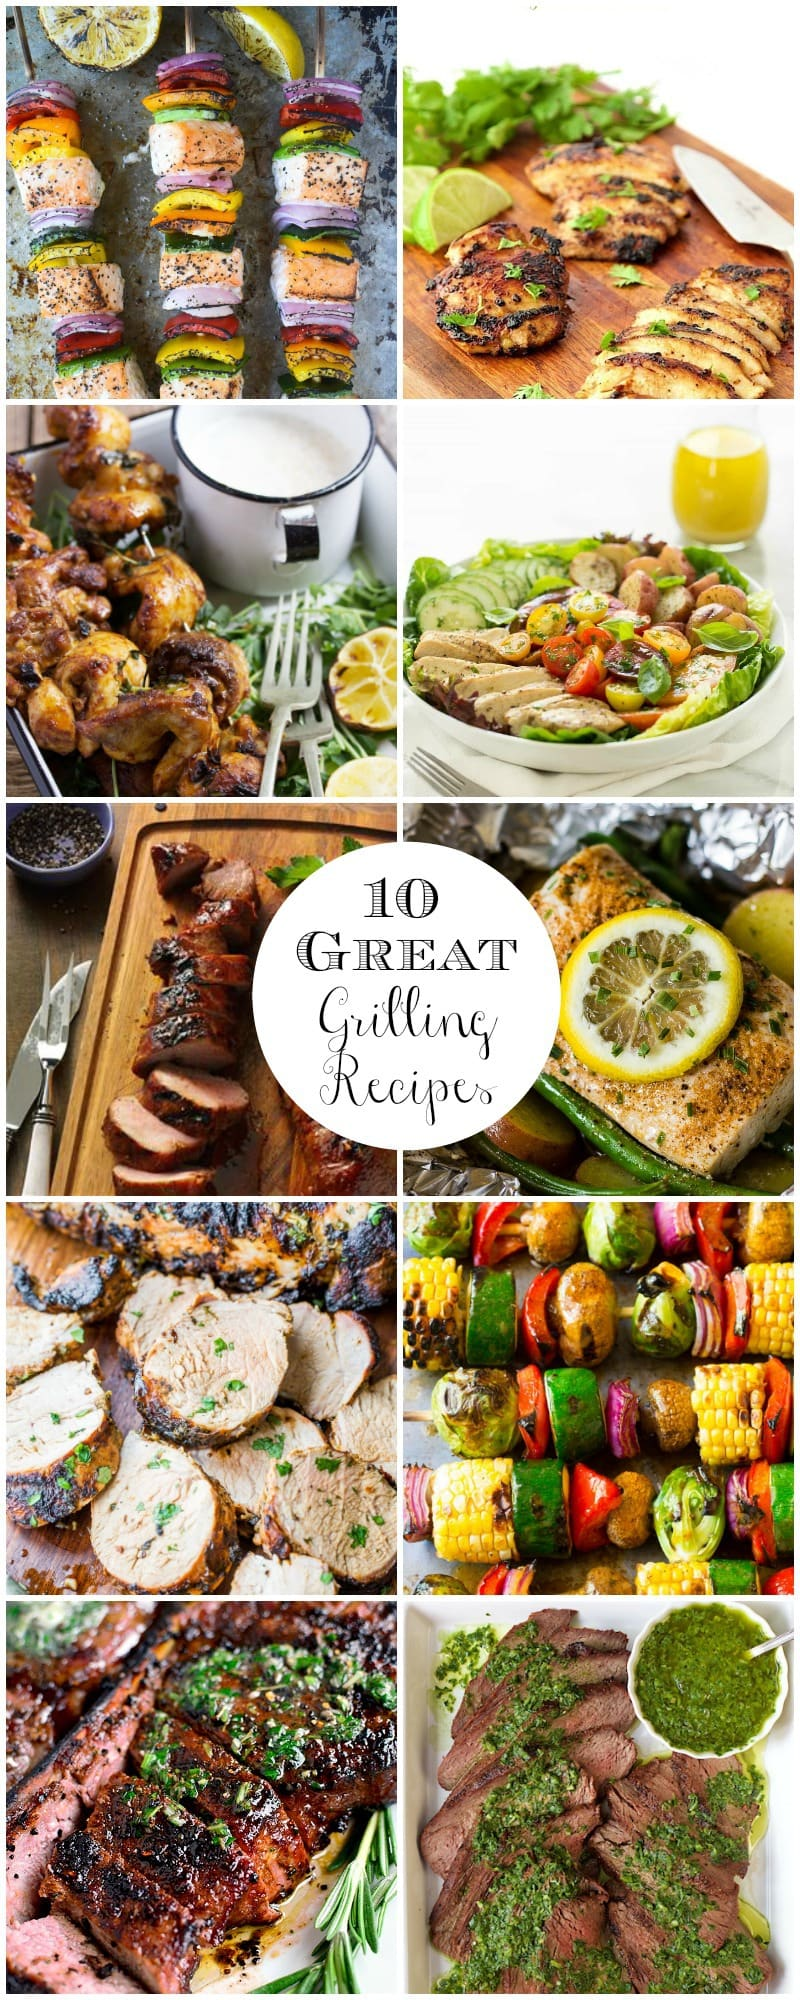 Drool-worthy and crazy delicious, these 10 Great Grilling Recipes from around the web, are perfect for warm weather entertaining!